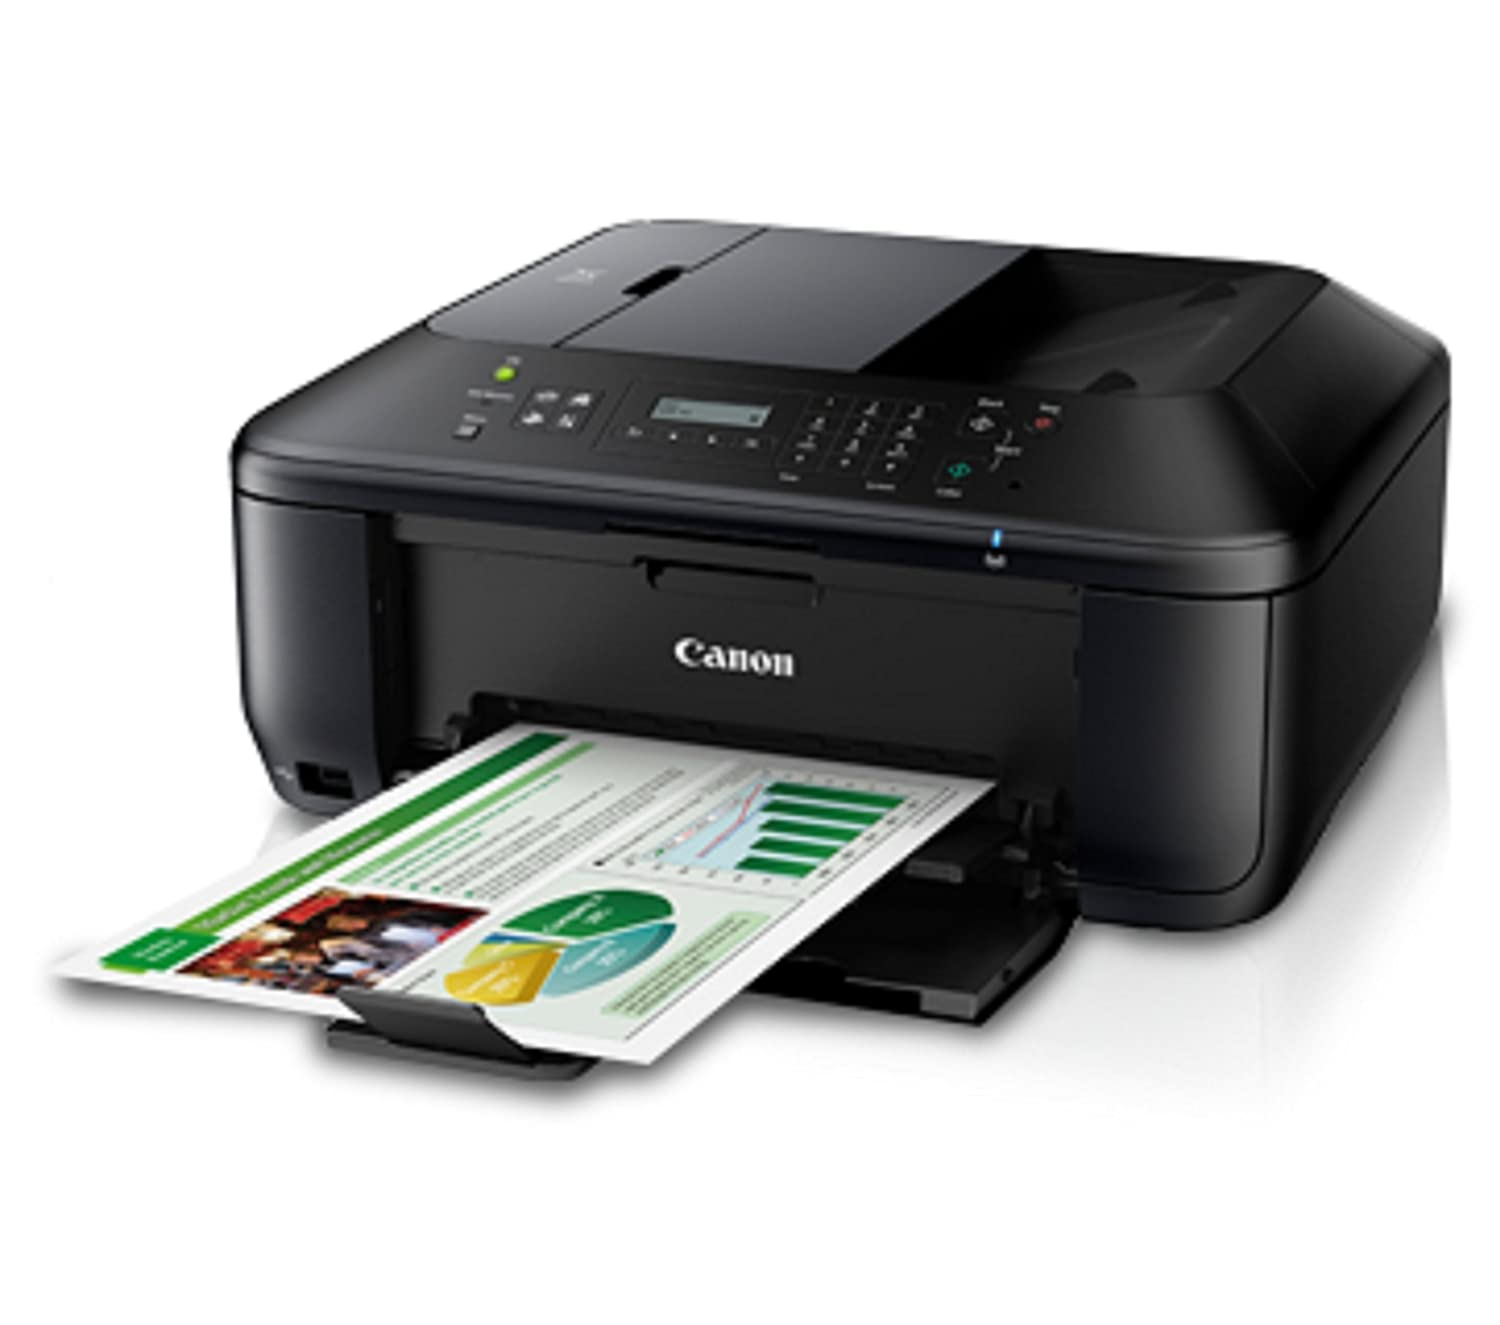 canon mx537 pixma mx all in one multi function mfns printer and scanner prices and ratings. Black Bedroom Furniture Sets. Home Design Ideas